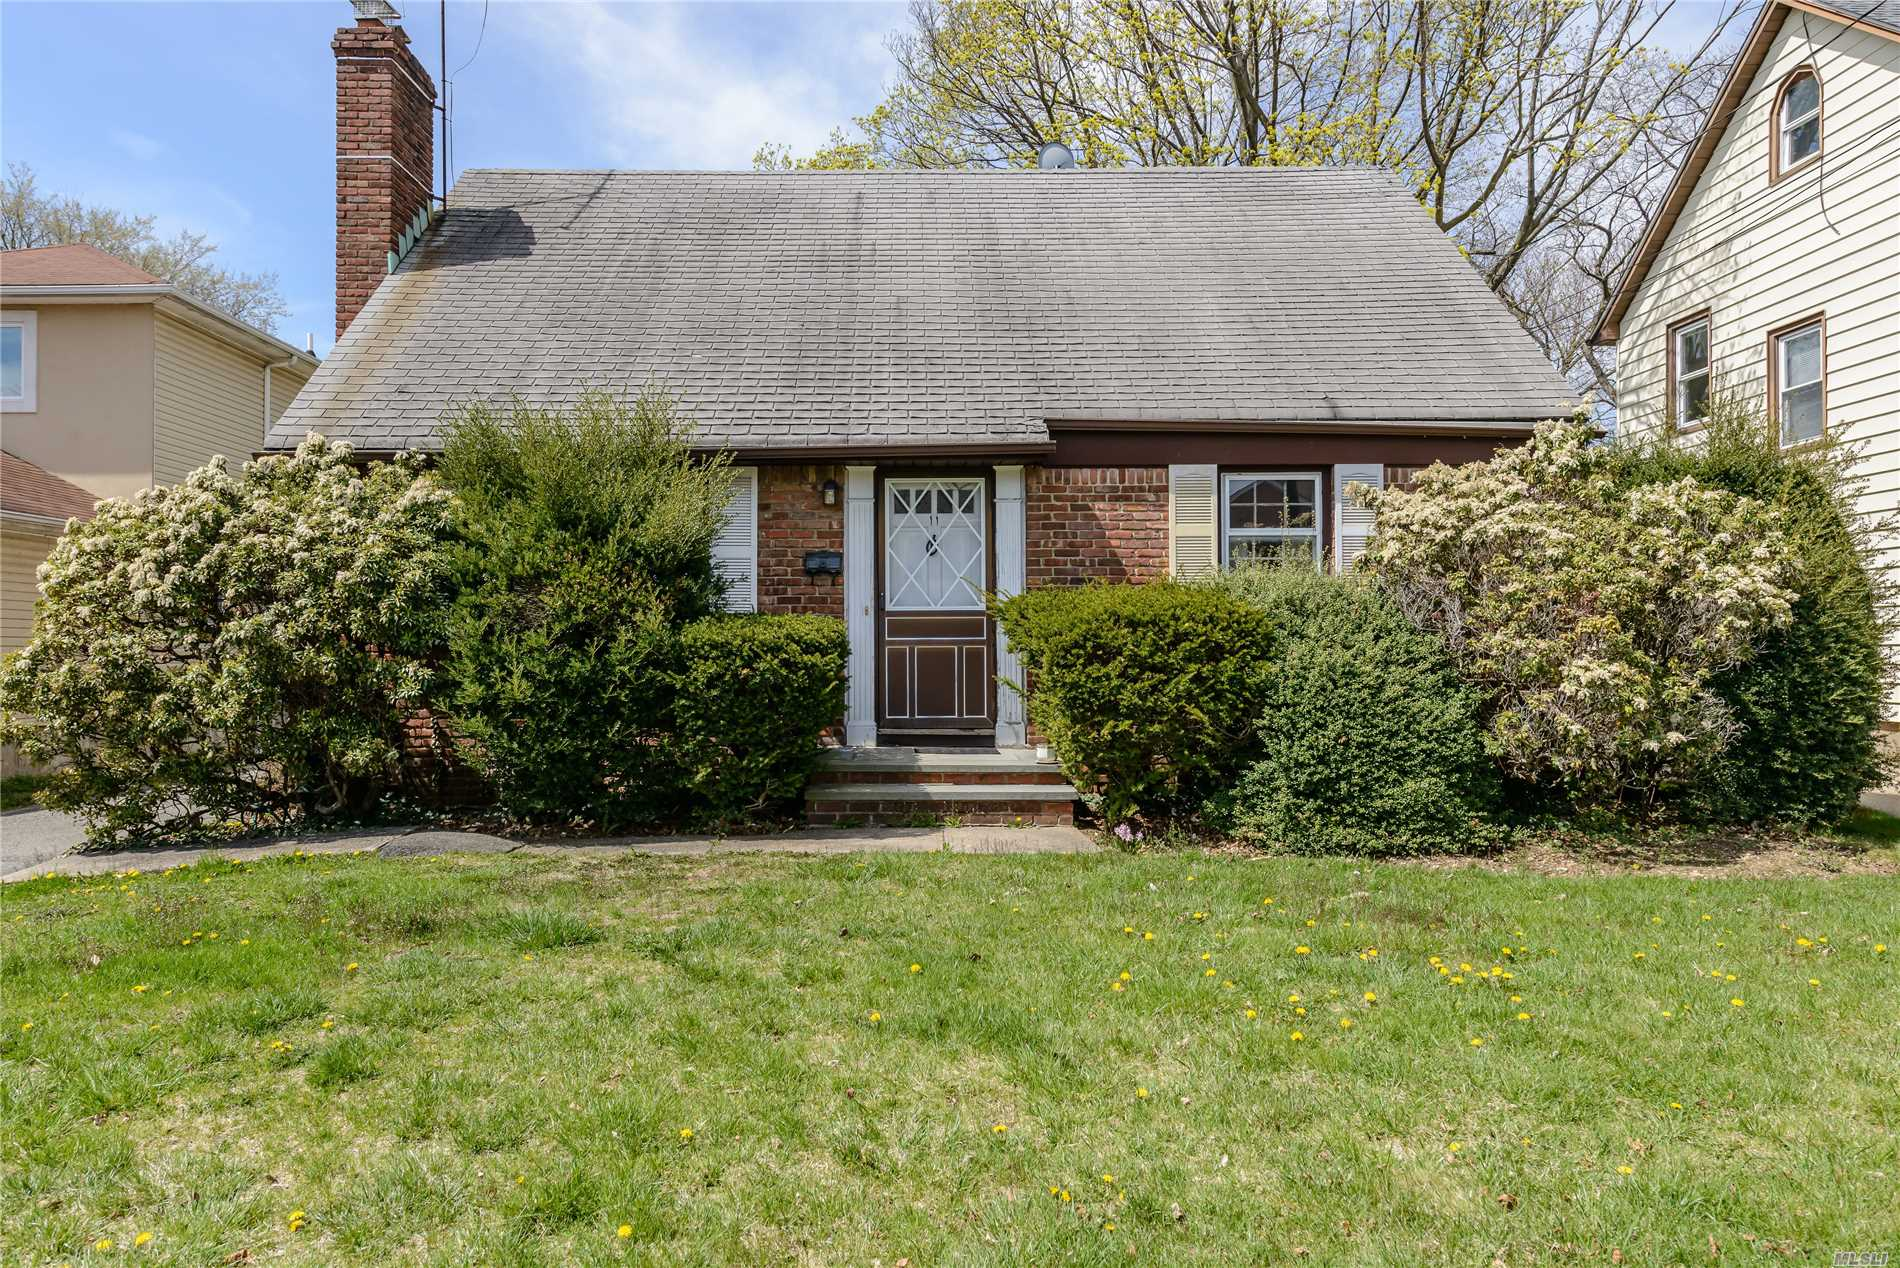 Opportunity Abounds In This Roslyn School District Cape. Situated On A 50 X 150 Lot, This Home Is Surrounded By Newer Builds And Well Maintained Homes. Close Proximity To The Lie, Northern State Parkway, Lirr And Two Major Medical Facilities. Home Needs Tlc. Cash Offers Are Preferred.